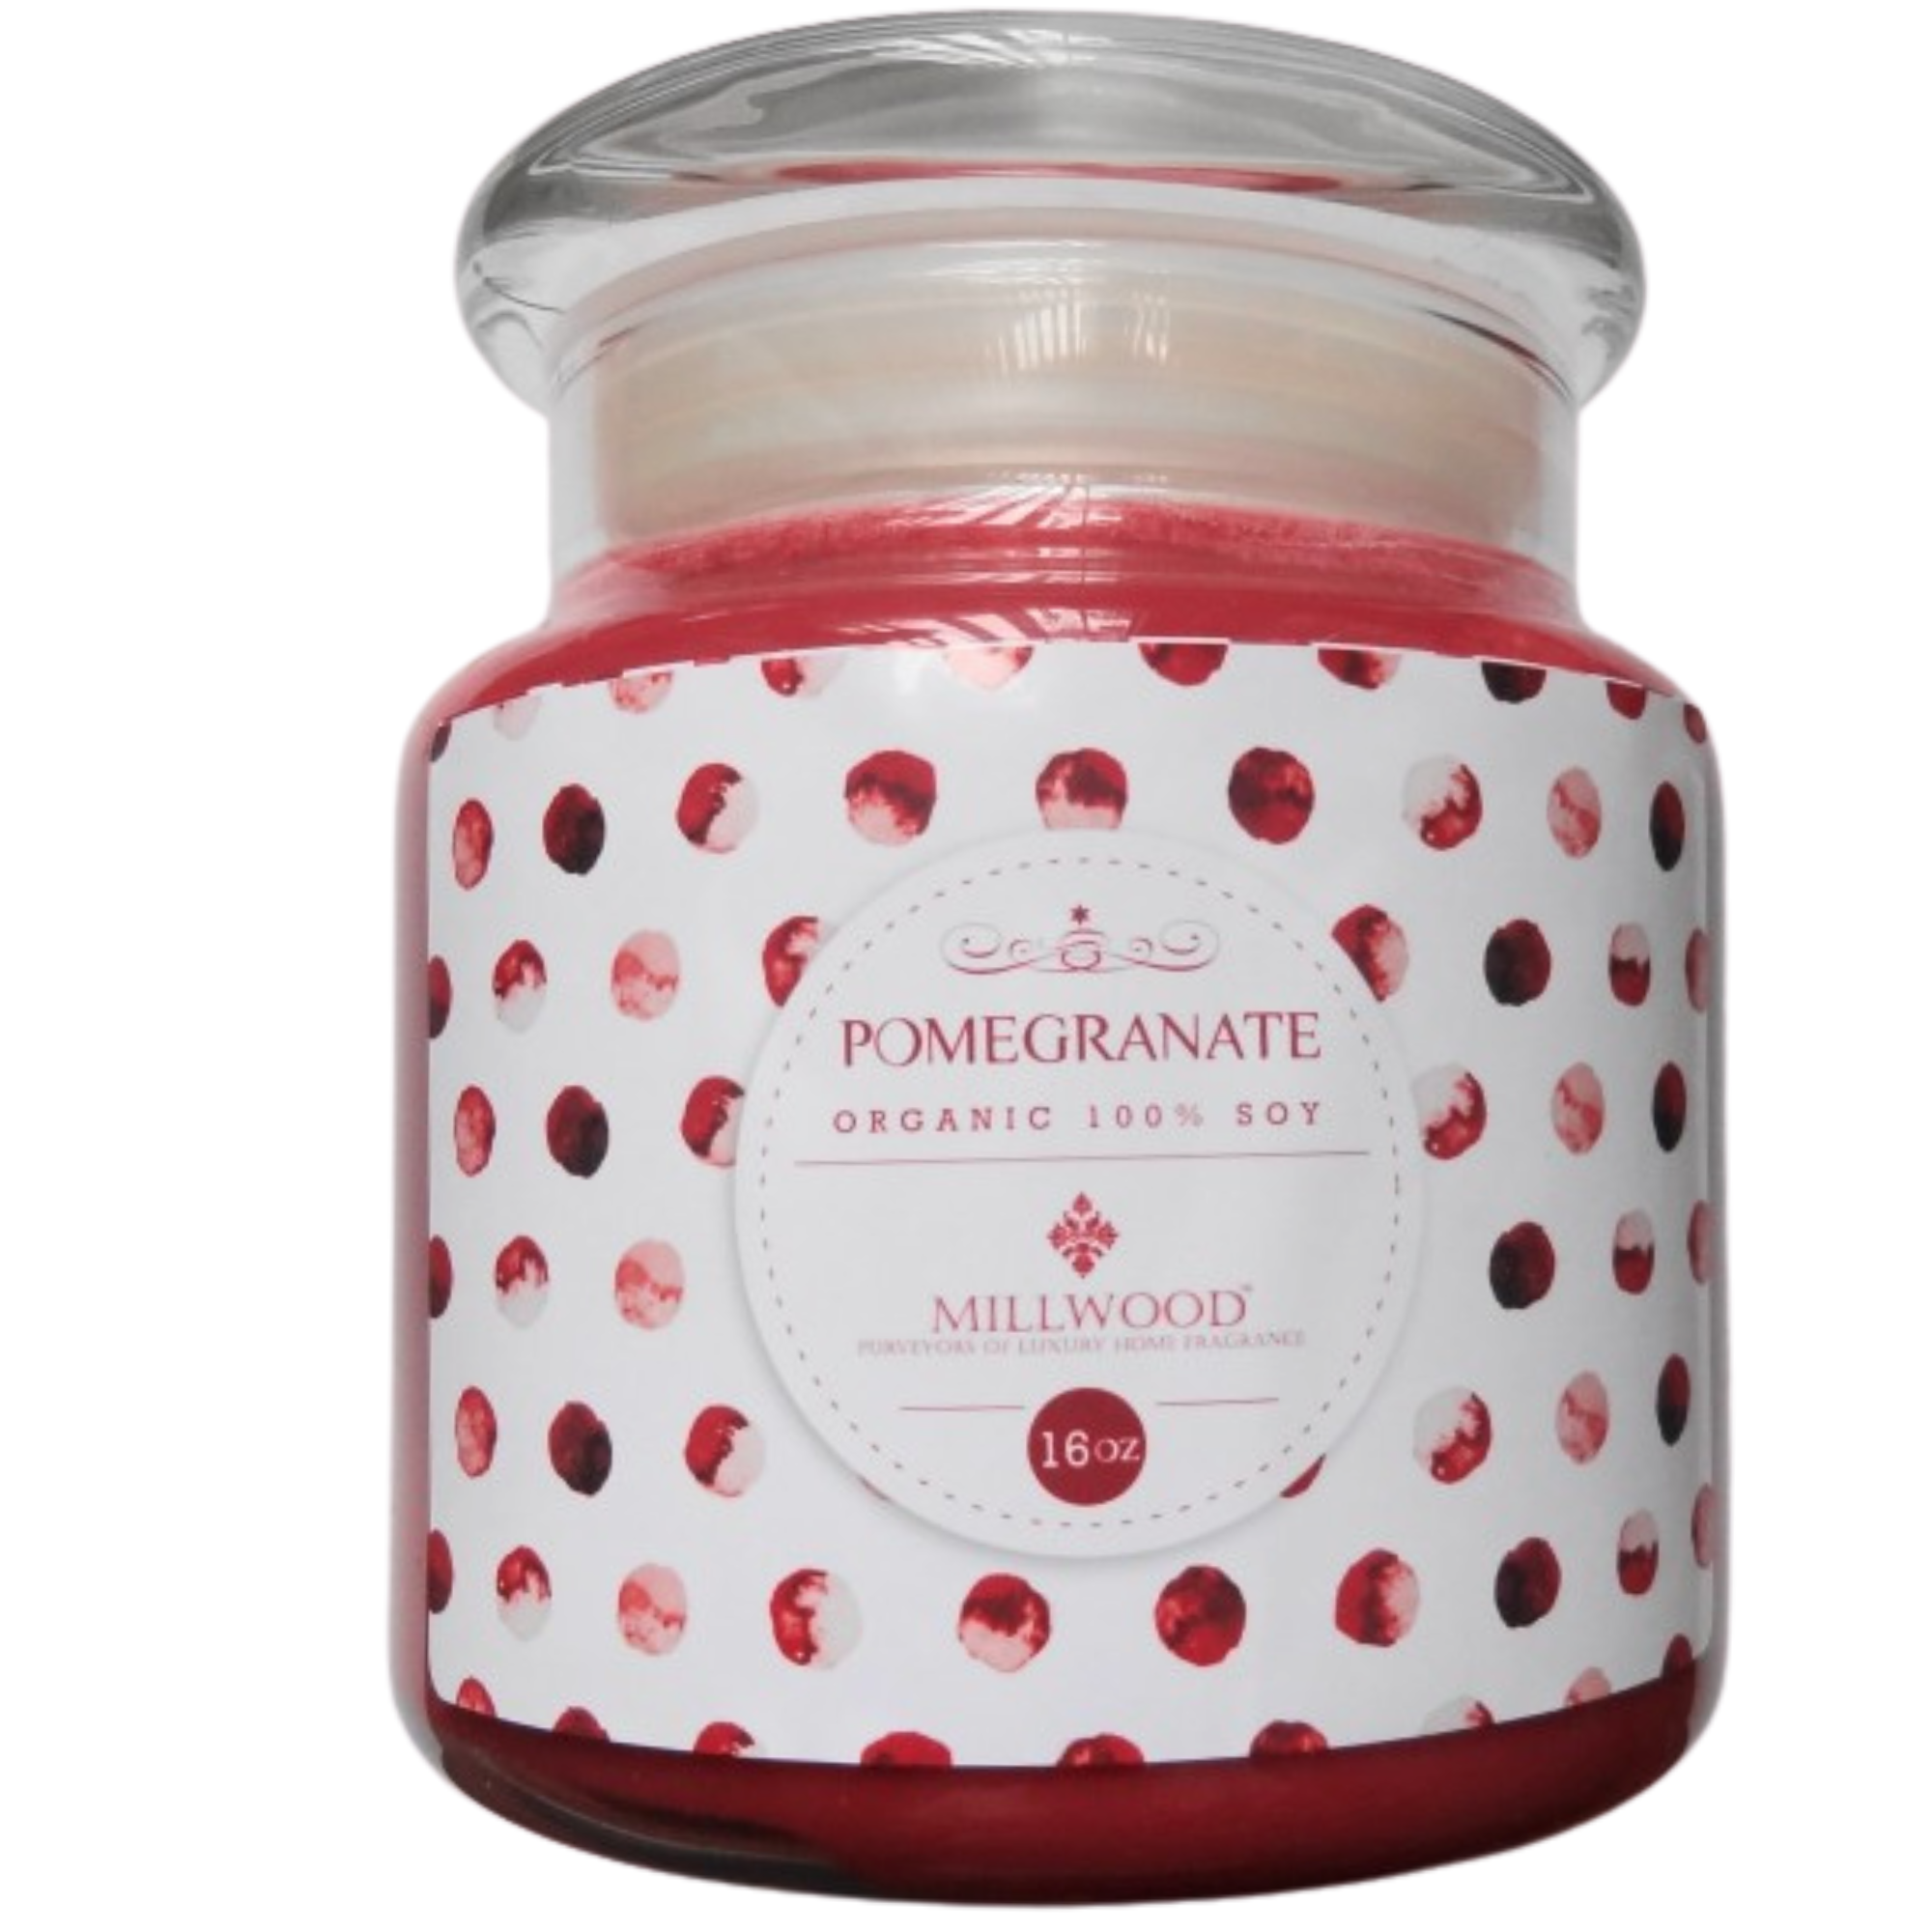 Pomegranate Soy Candle 16-oz